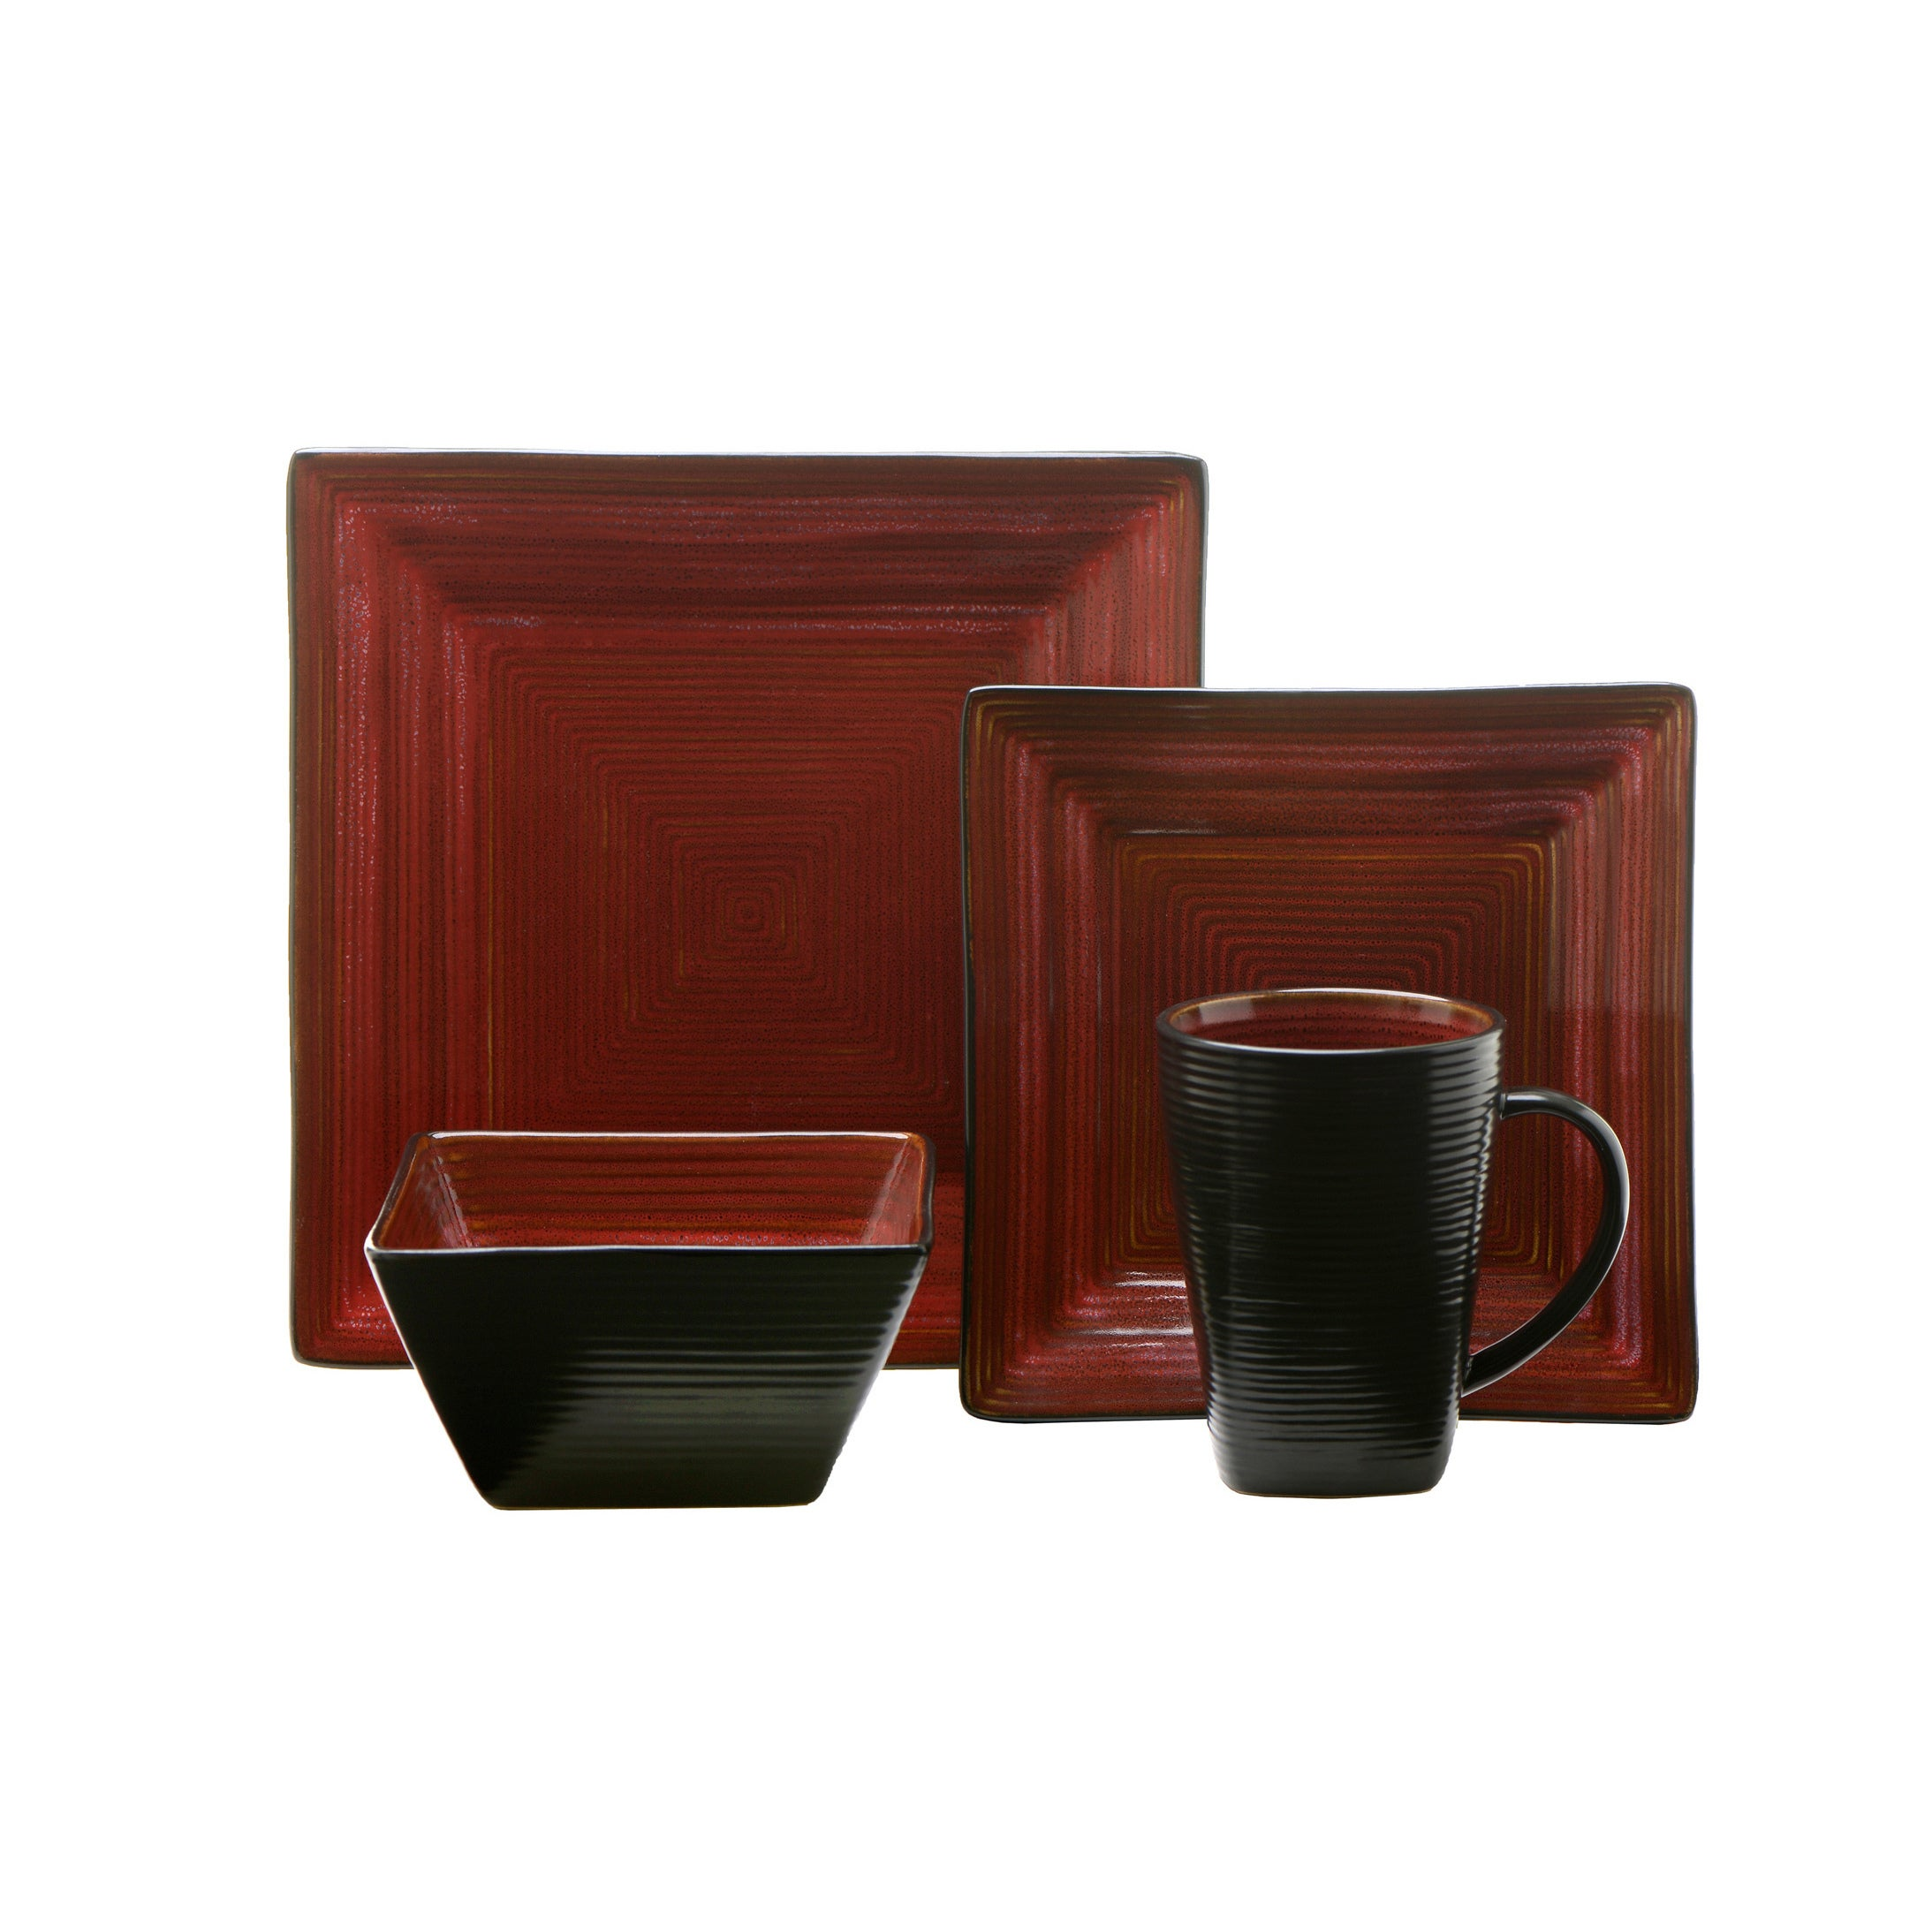 Oneida Adriatic Red 32-Piece Dinnerware Set Service for 8 - Free Shipping Today - Overstock - 19147093  sc 1 st  Overstock & Oneida Adriatic Red 32-Piece Dinnerware Set Service for 8 - Free ...